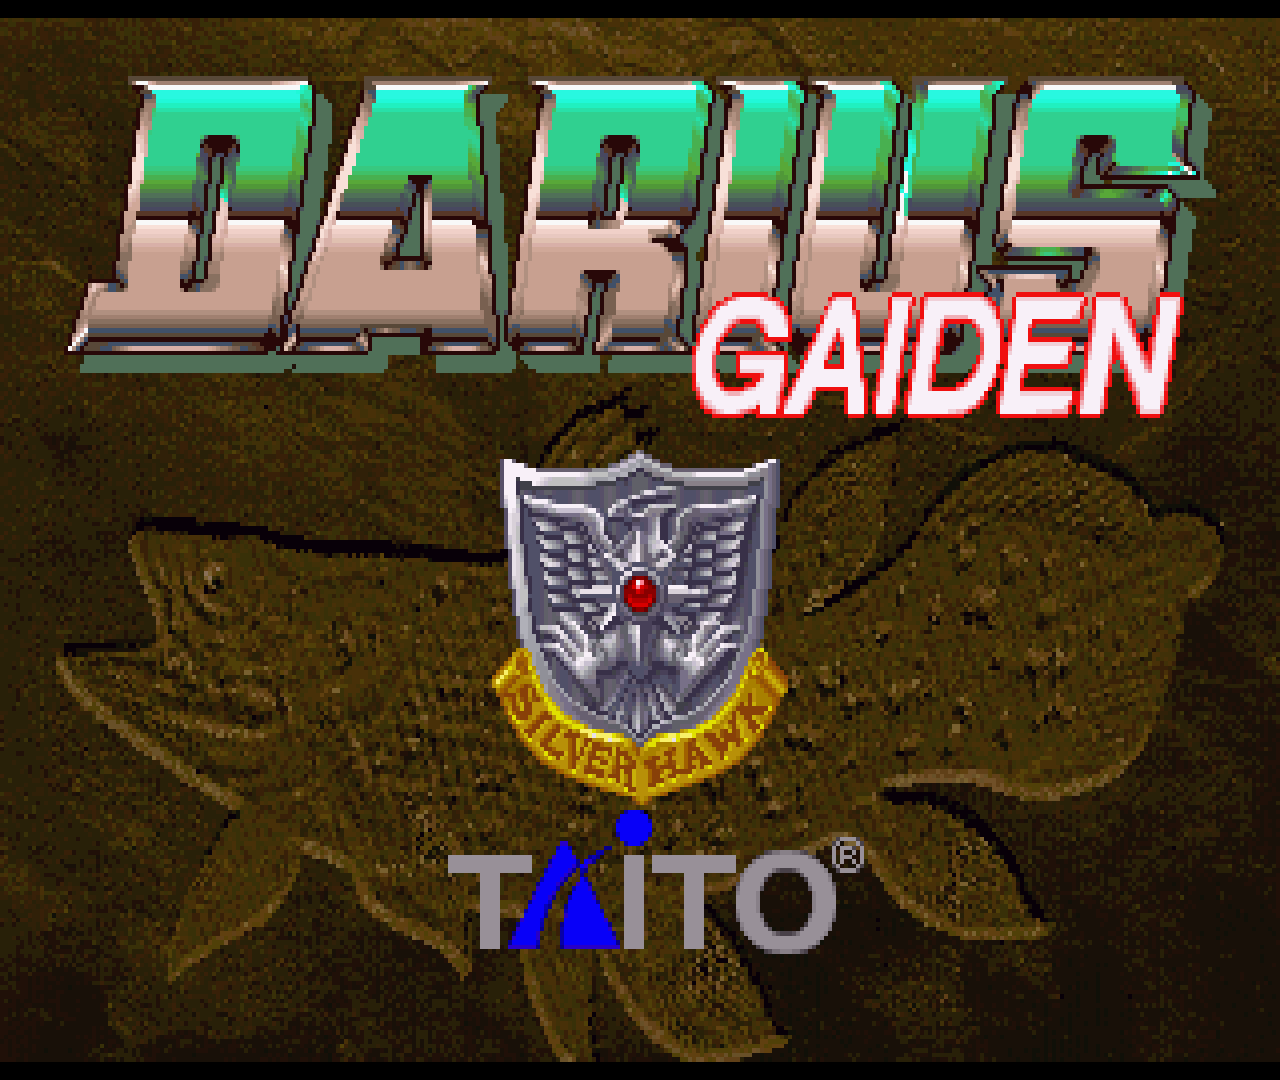 Figure 14 - Darius Gaiden for Sega Saturn running on the ODROID